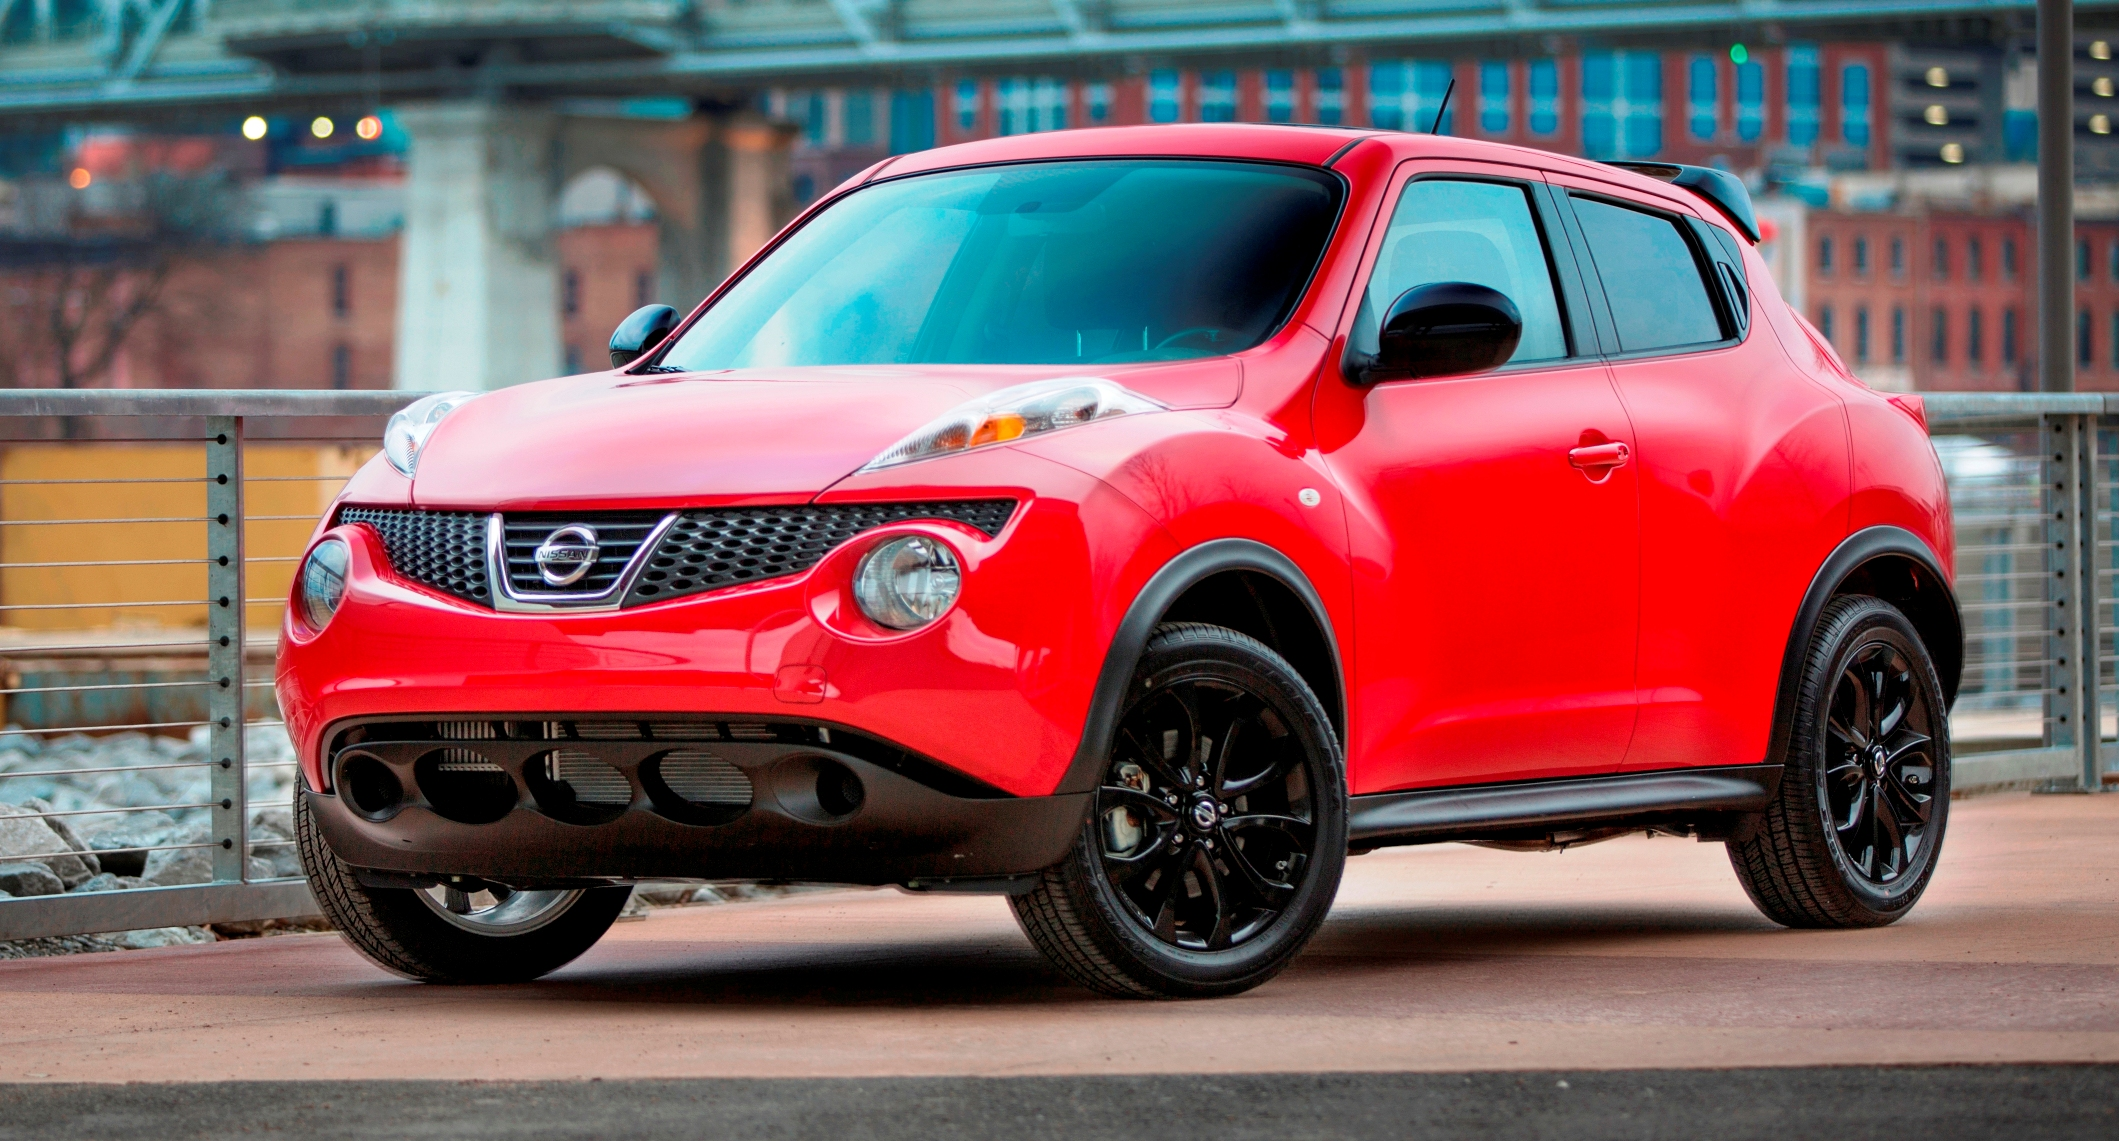 Nissan JUKE Is Cool New Car From 20k